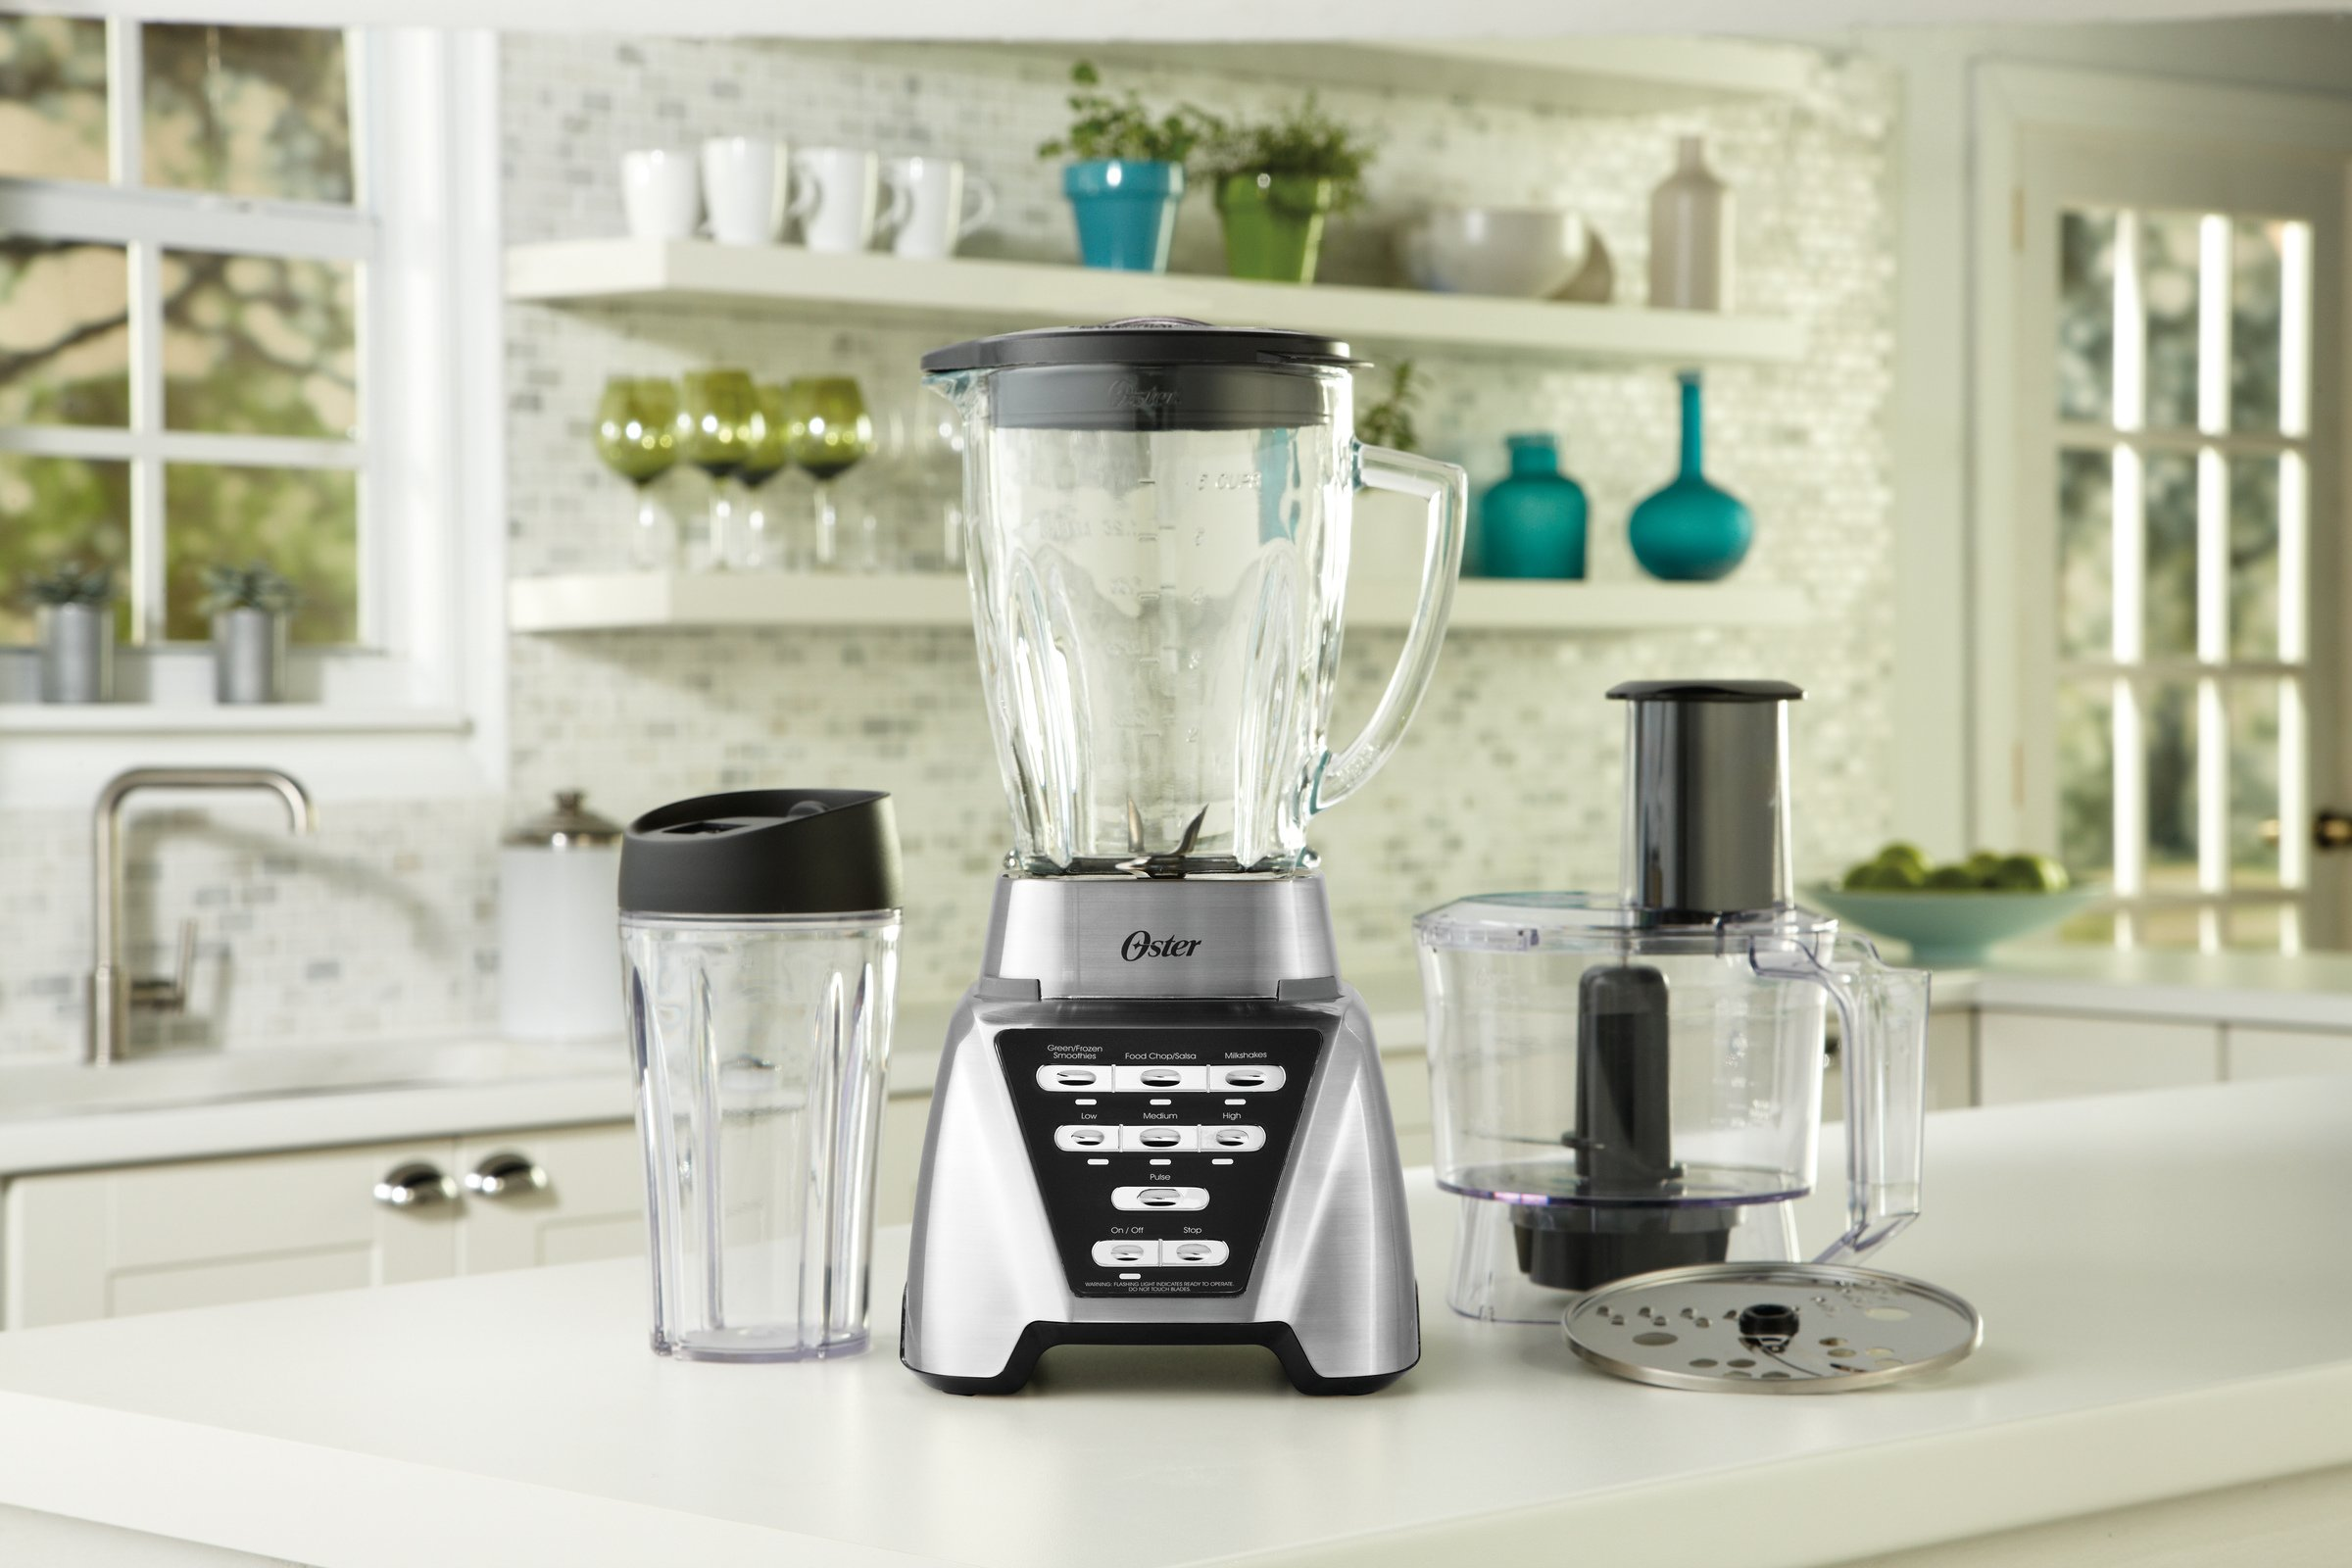 Oster Pro 1200 Blender with Glass Jar plus Smoothie Cup & Food Processor Attachment, Brushed Nickel by Oster (Image #7)